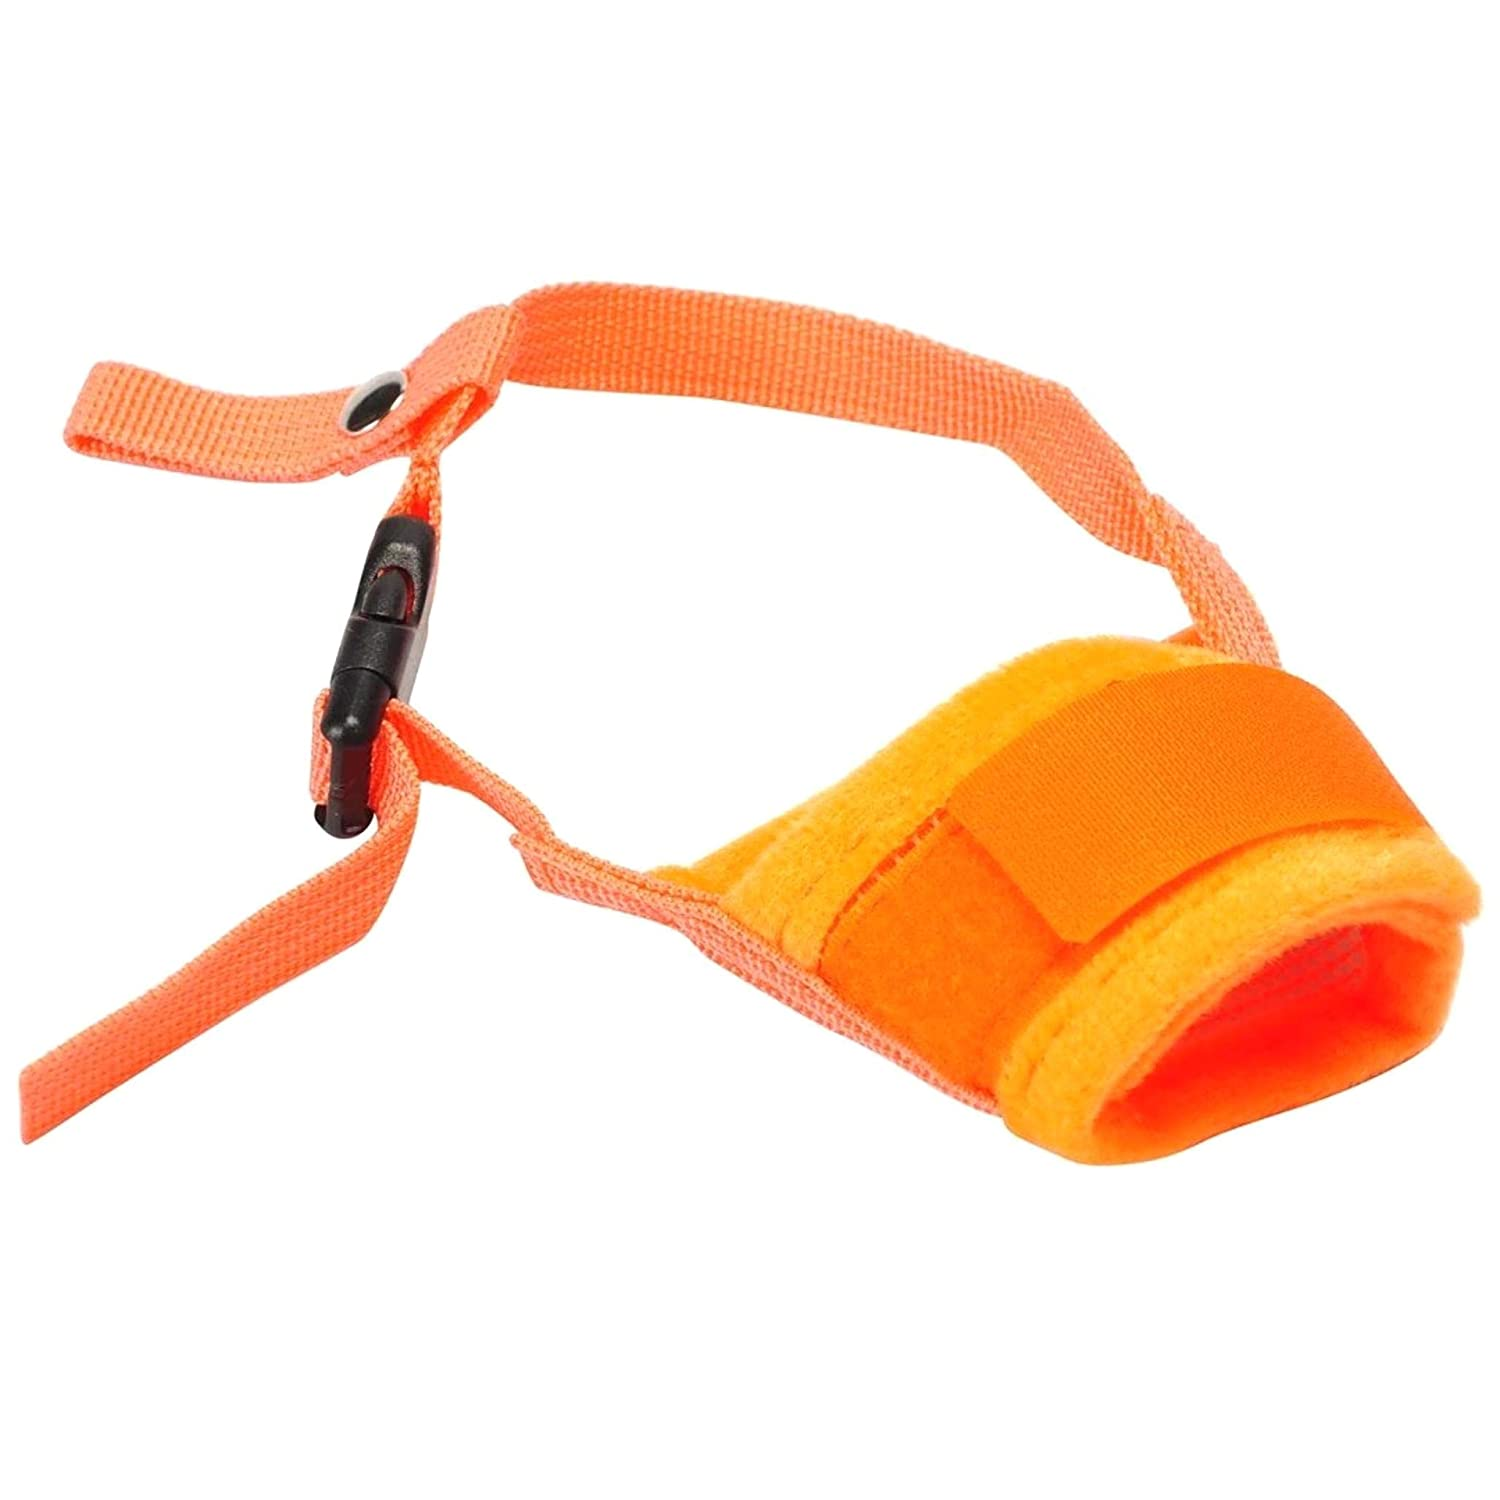 LIUSHUI Dog Muzzle Adjustable Breathable Soft Dog Muzzle Prevent Biting Barking and Chewing